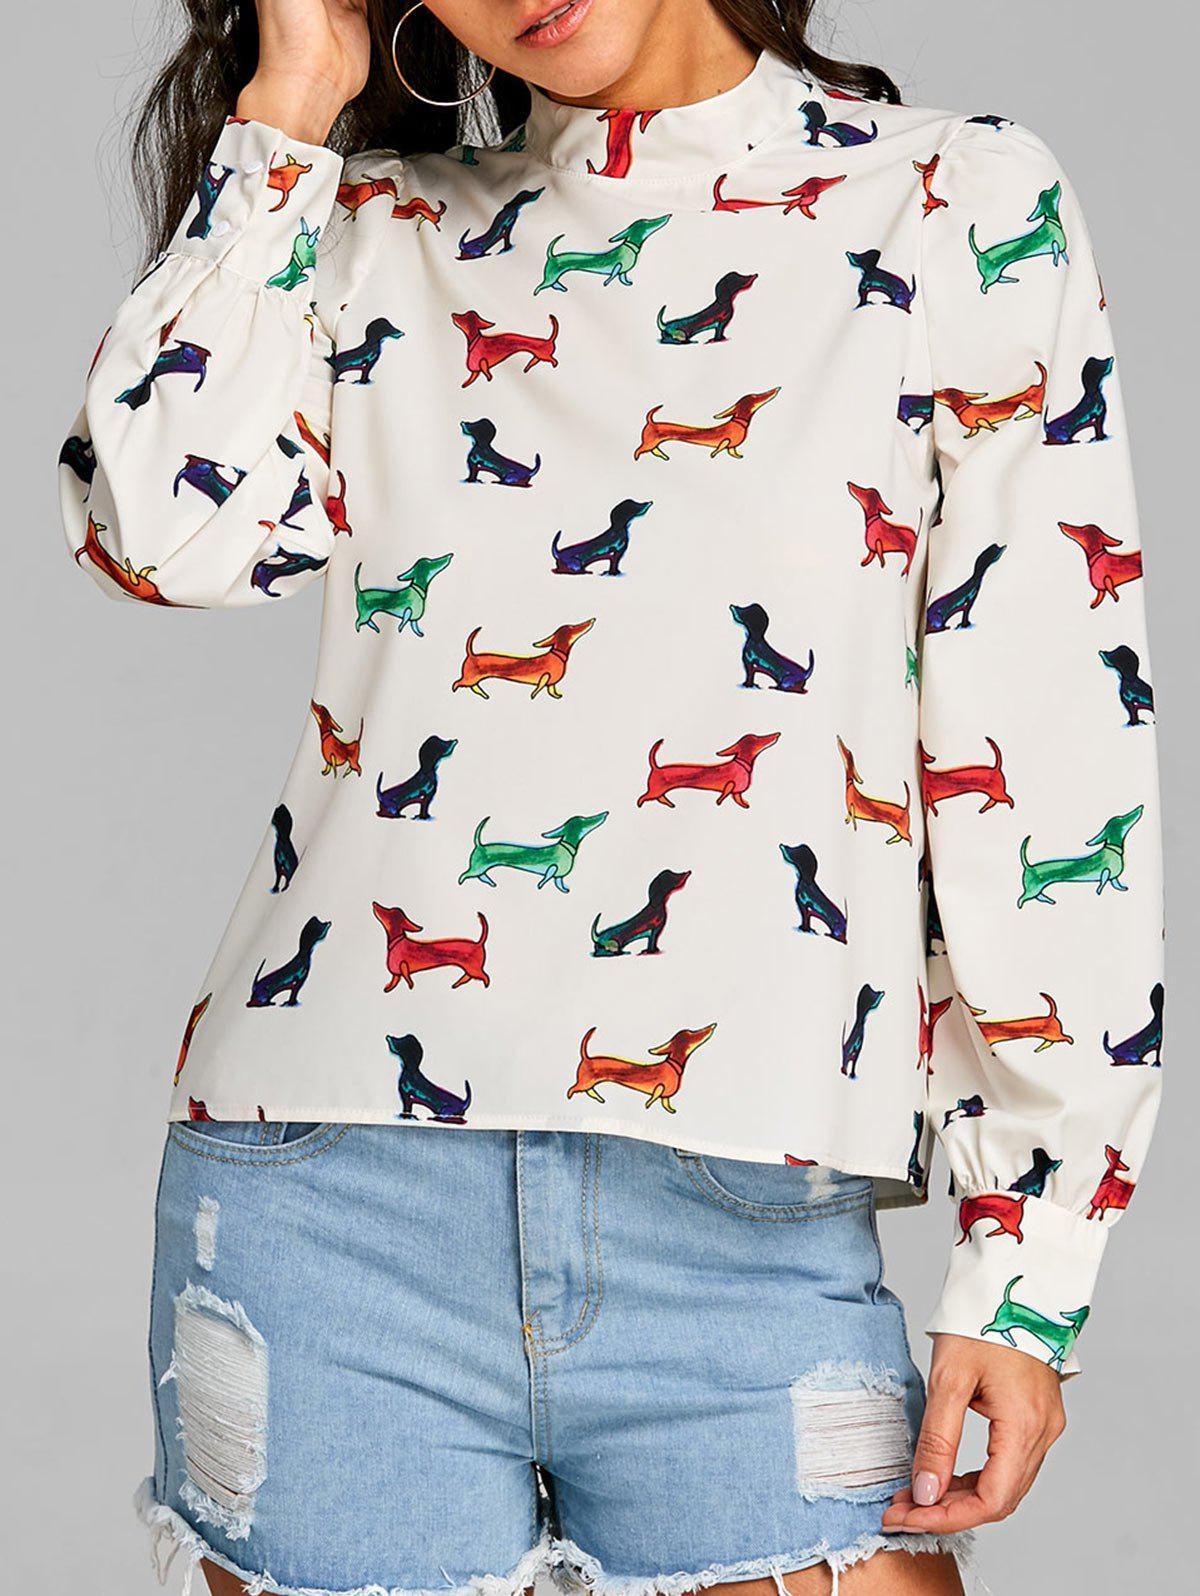 Store Dog Printed Long Sleeve Blouse